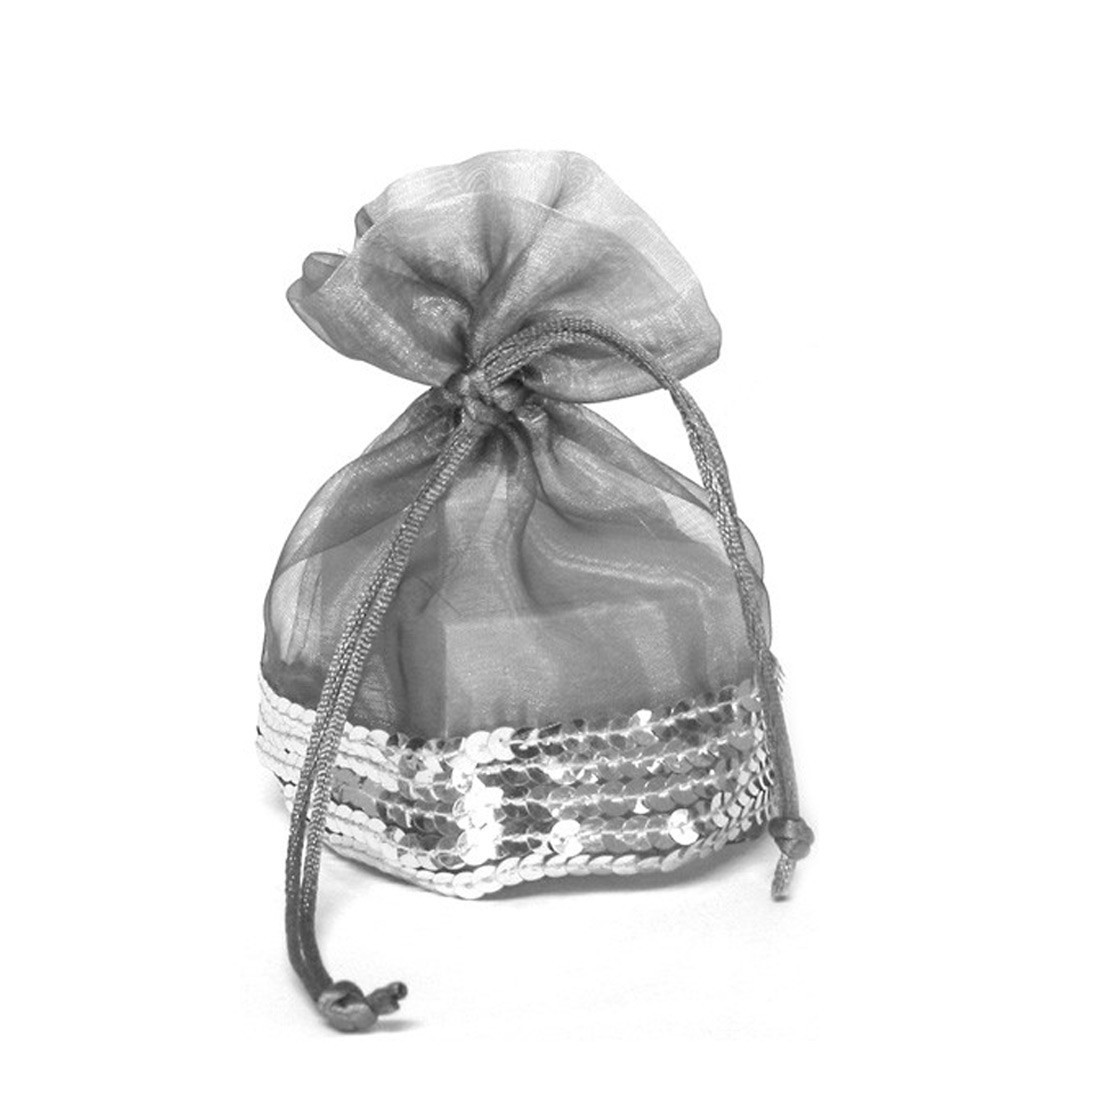 Drawstring pouch for jewels and costume jewellery